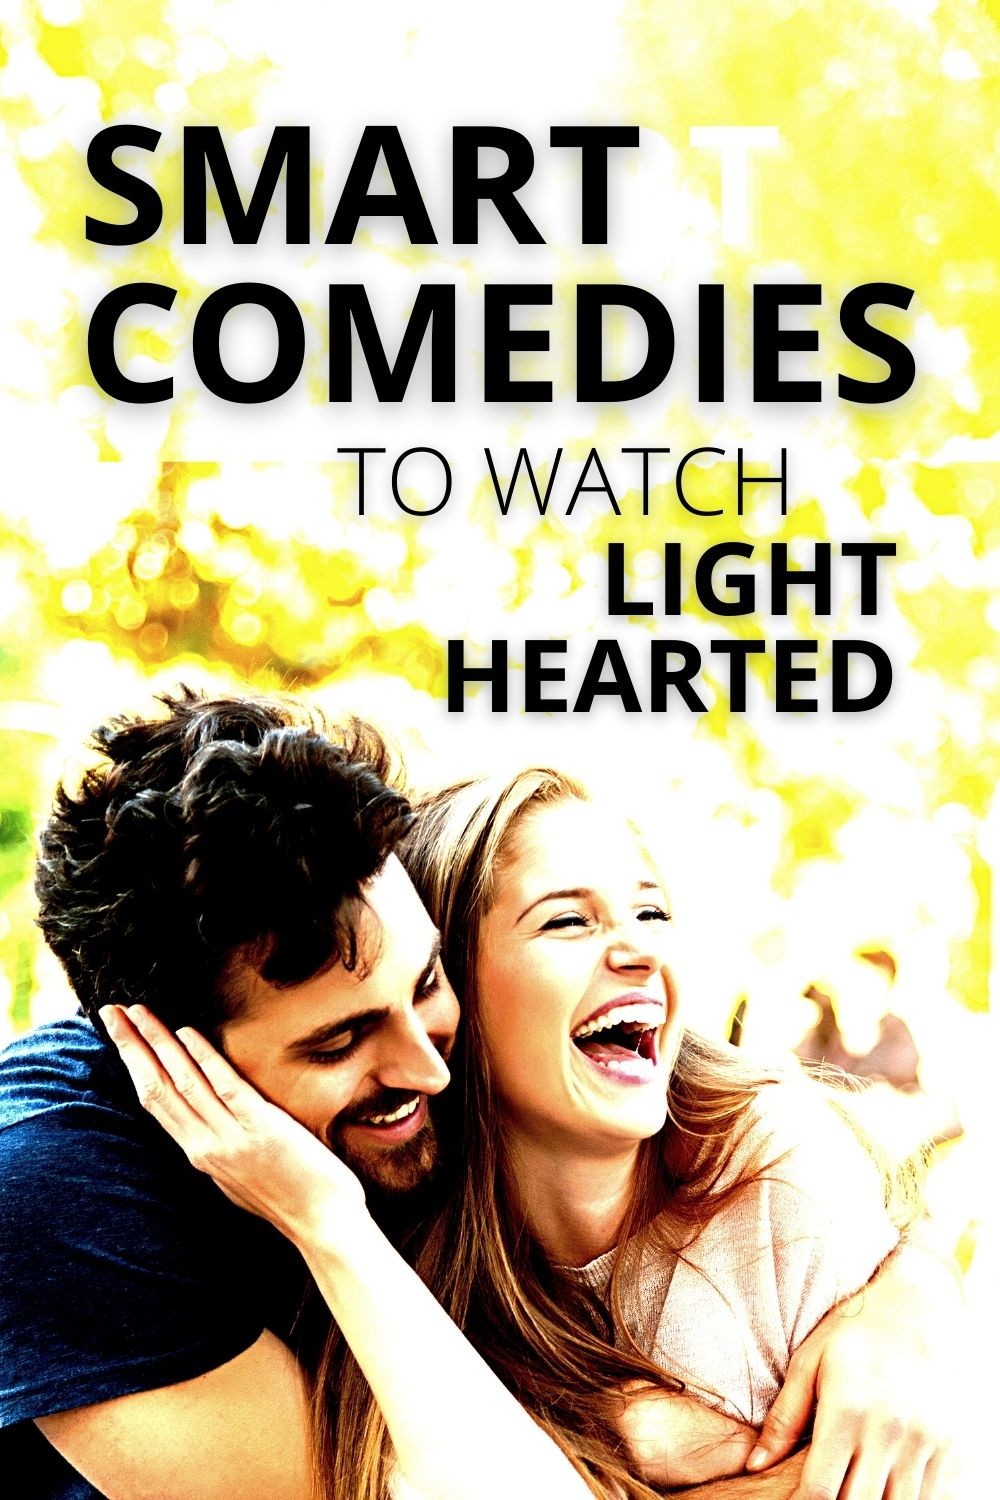 When life hit us hard, we all look some smart light hearted comedies to lift us up. So let's see some good movies and smile together. #MOVIES